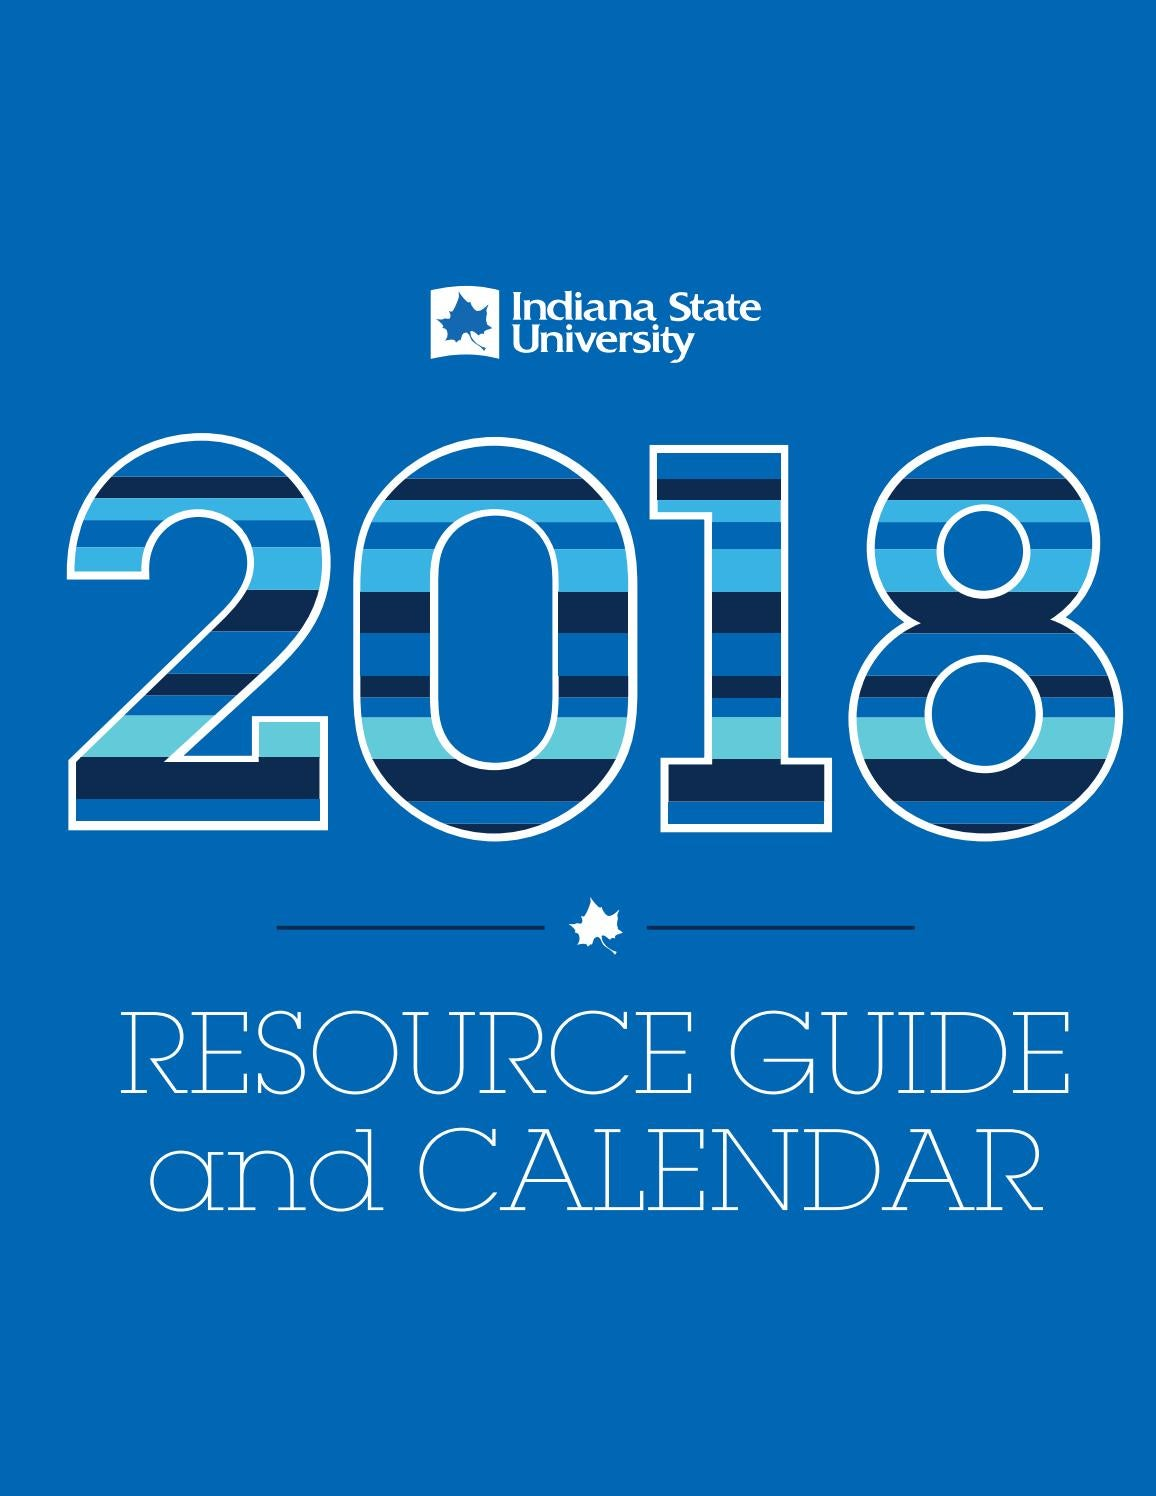 New Student Orientation Guide 2018 by Indiana State University - issuu